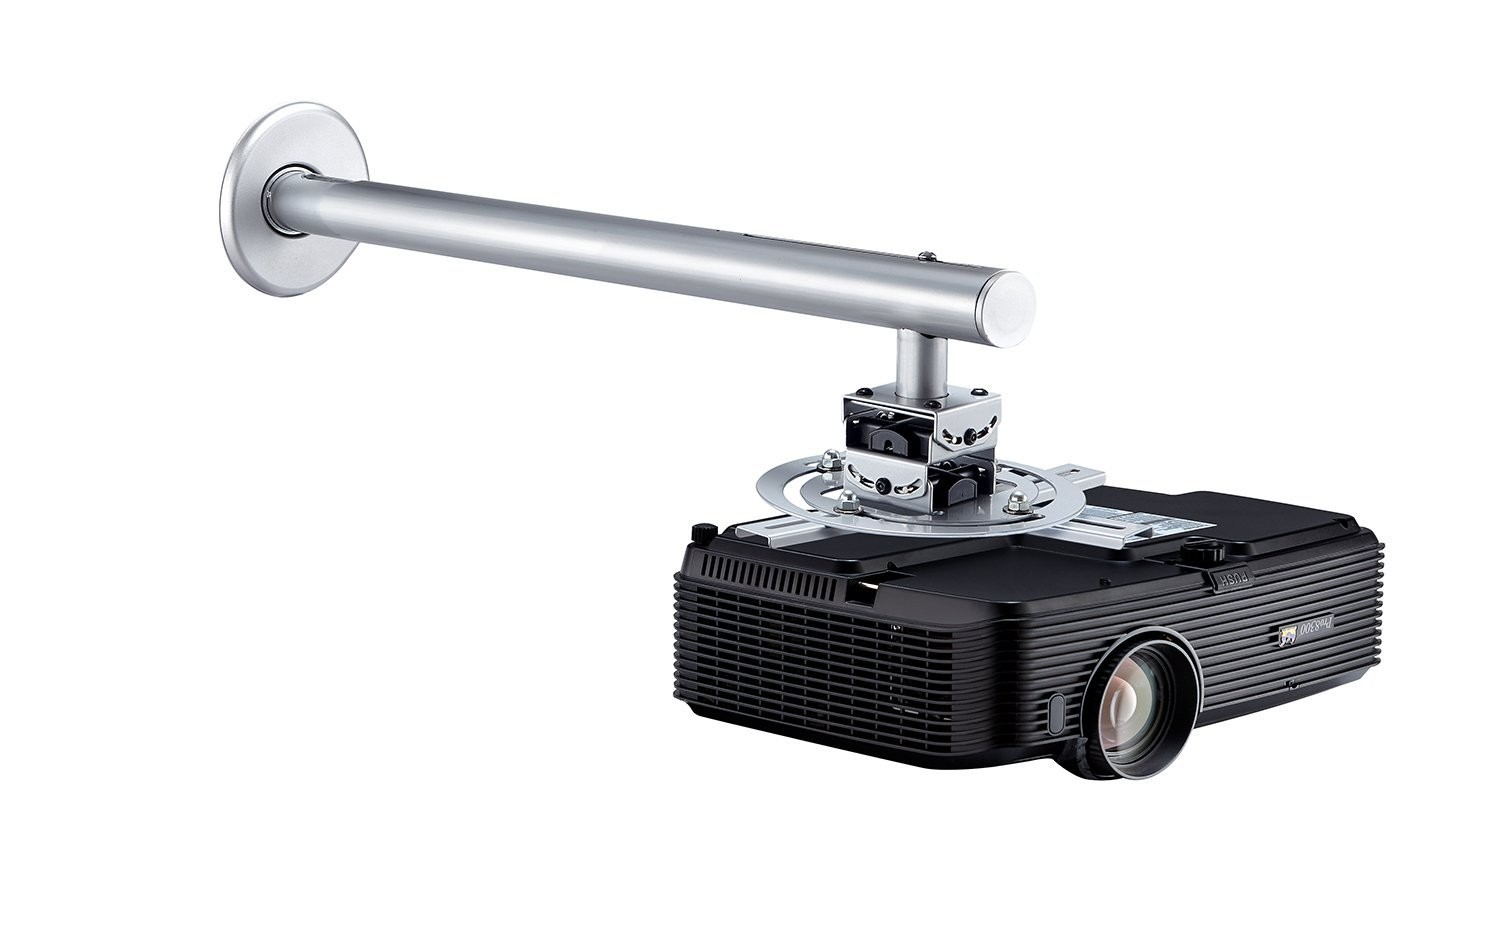 """Projector Universal Wall Mount up to 23"""" Extension from Wall, Tilted up and down 12 degree and Precisely  tightly locked -Refurbished"""